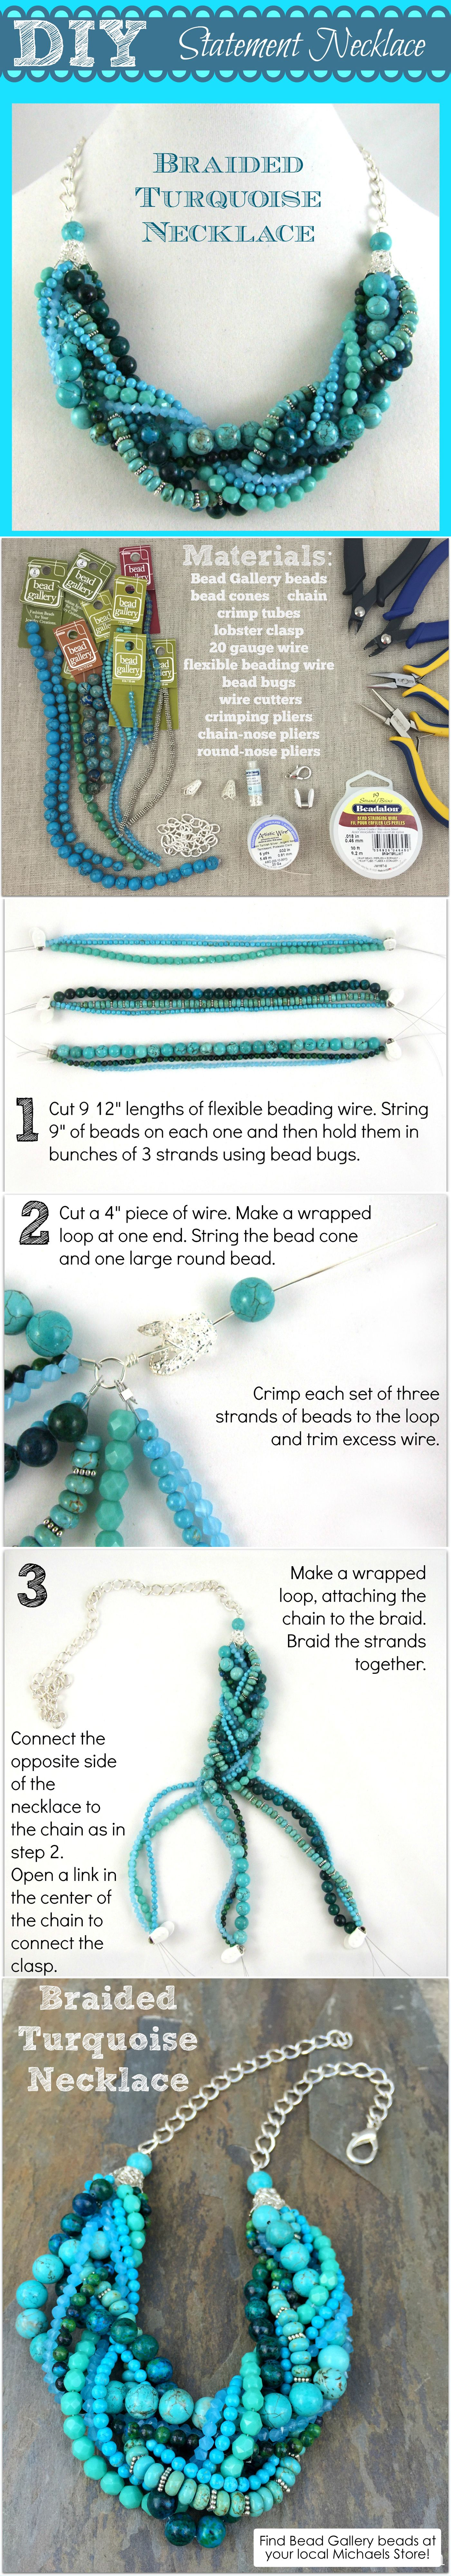 Easy Steps On How To Get The Best Jewelry | Braided necklace ...